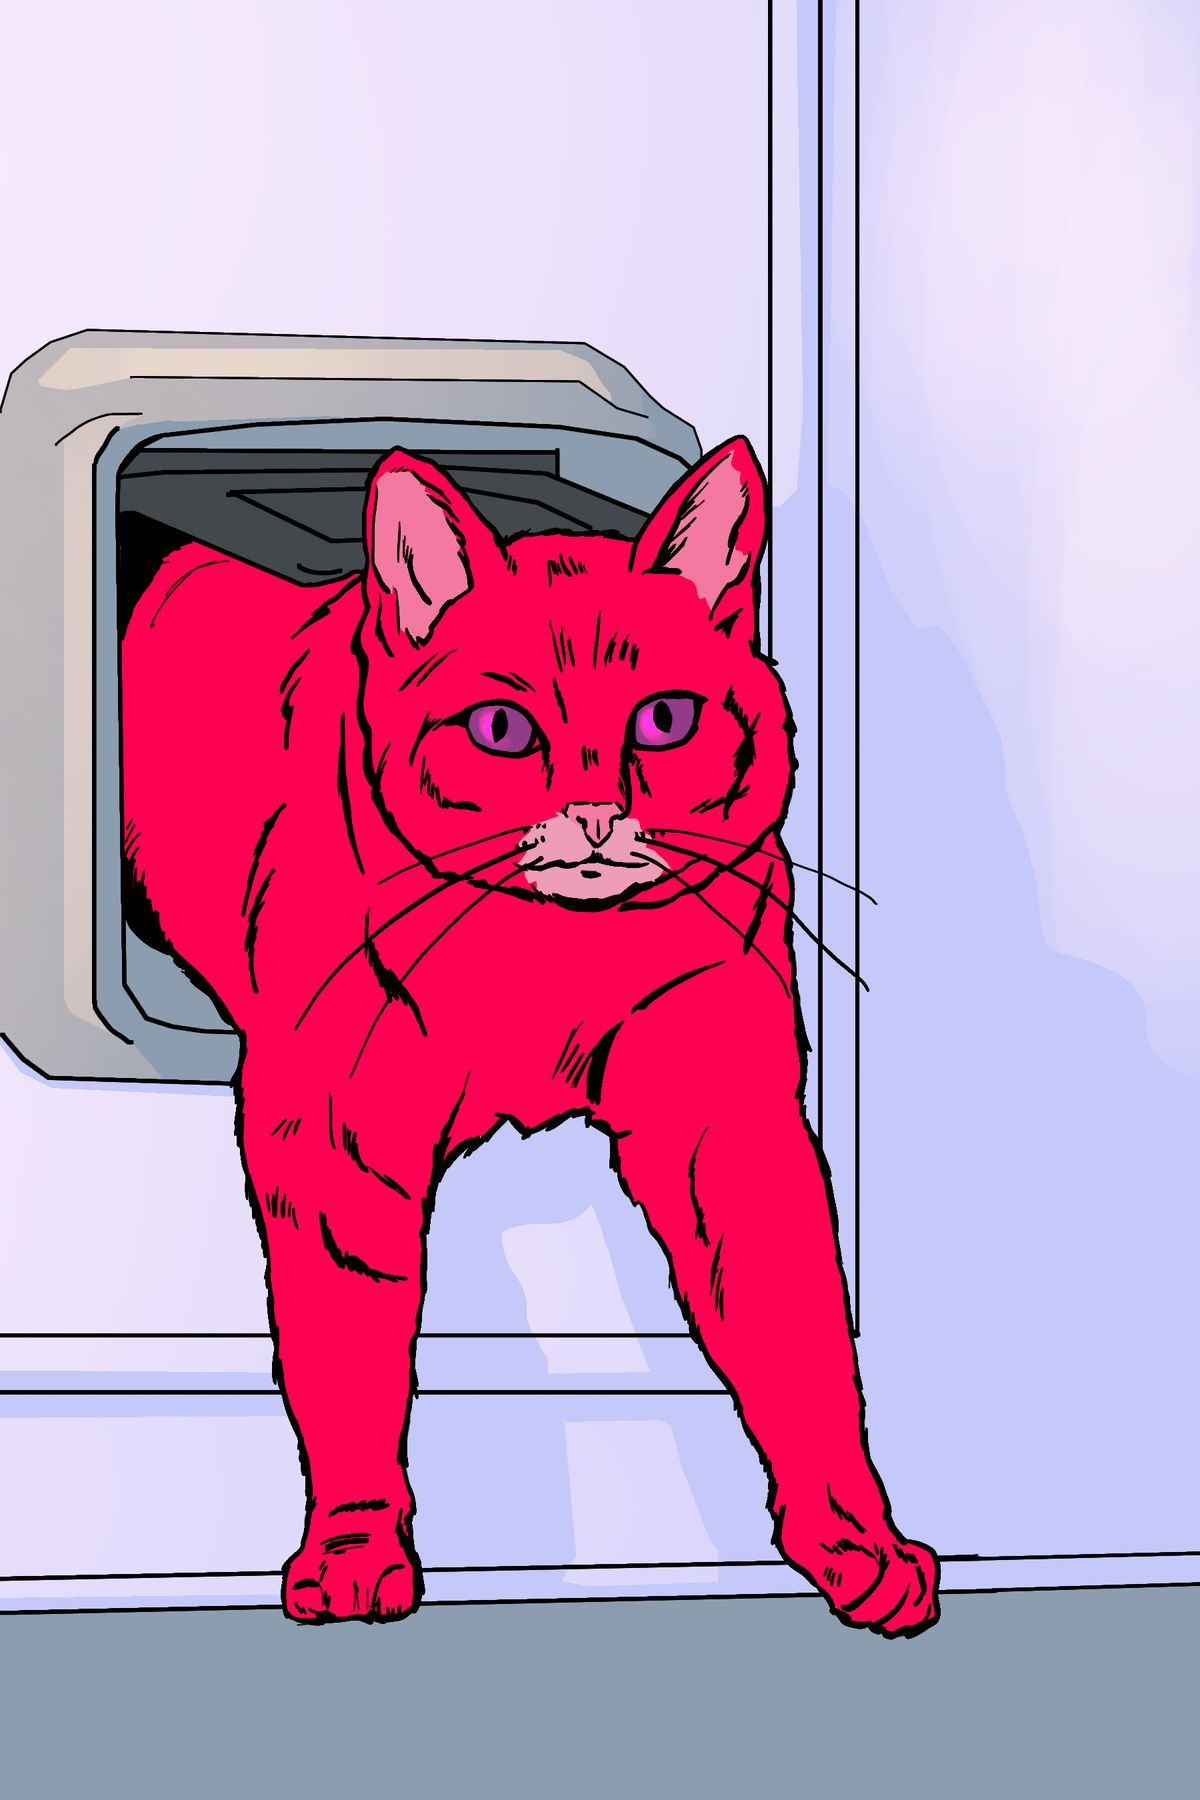 One determined pink cat emerges from the cat door on the other side.